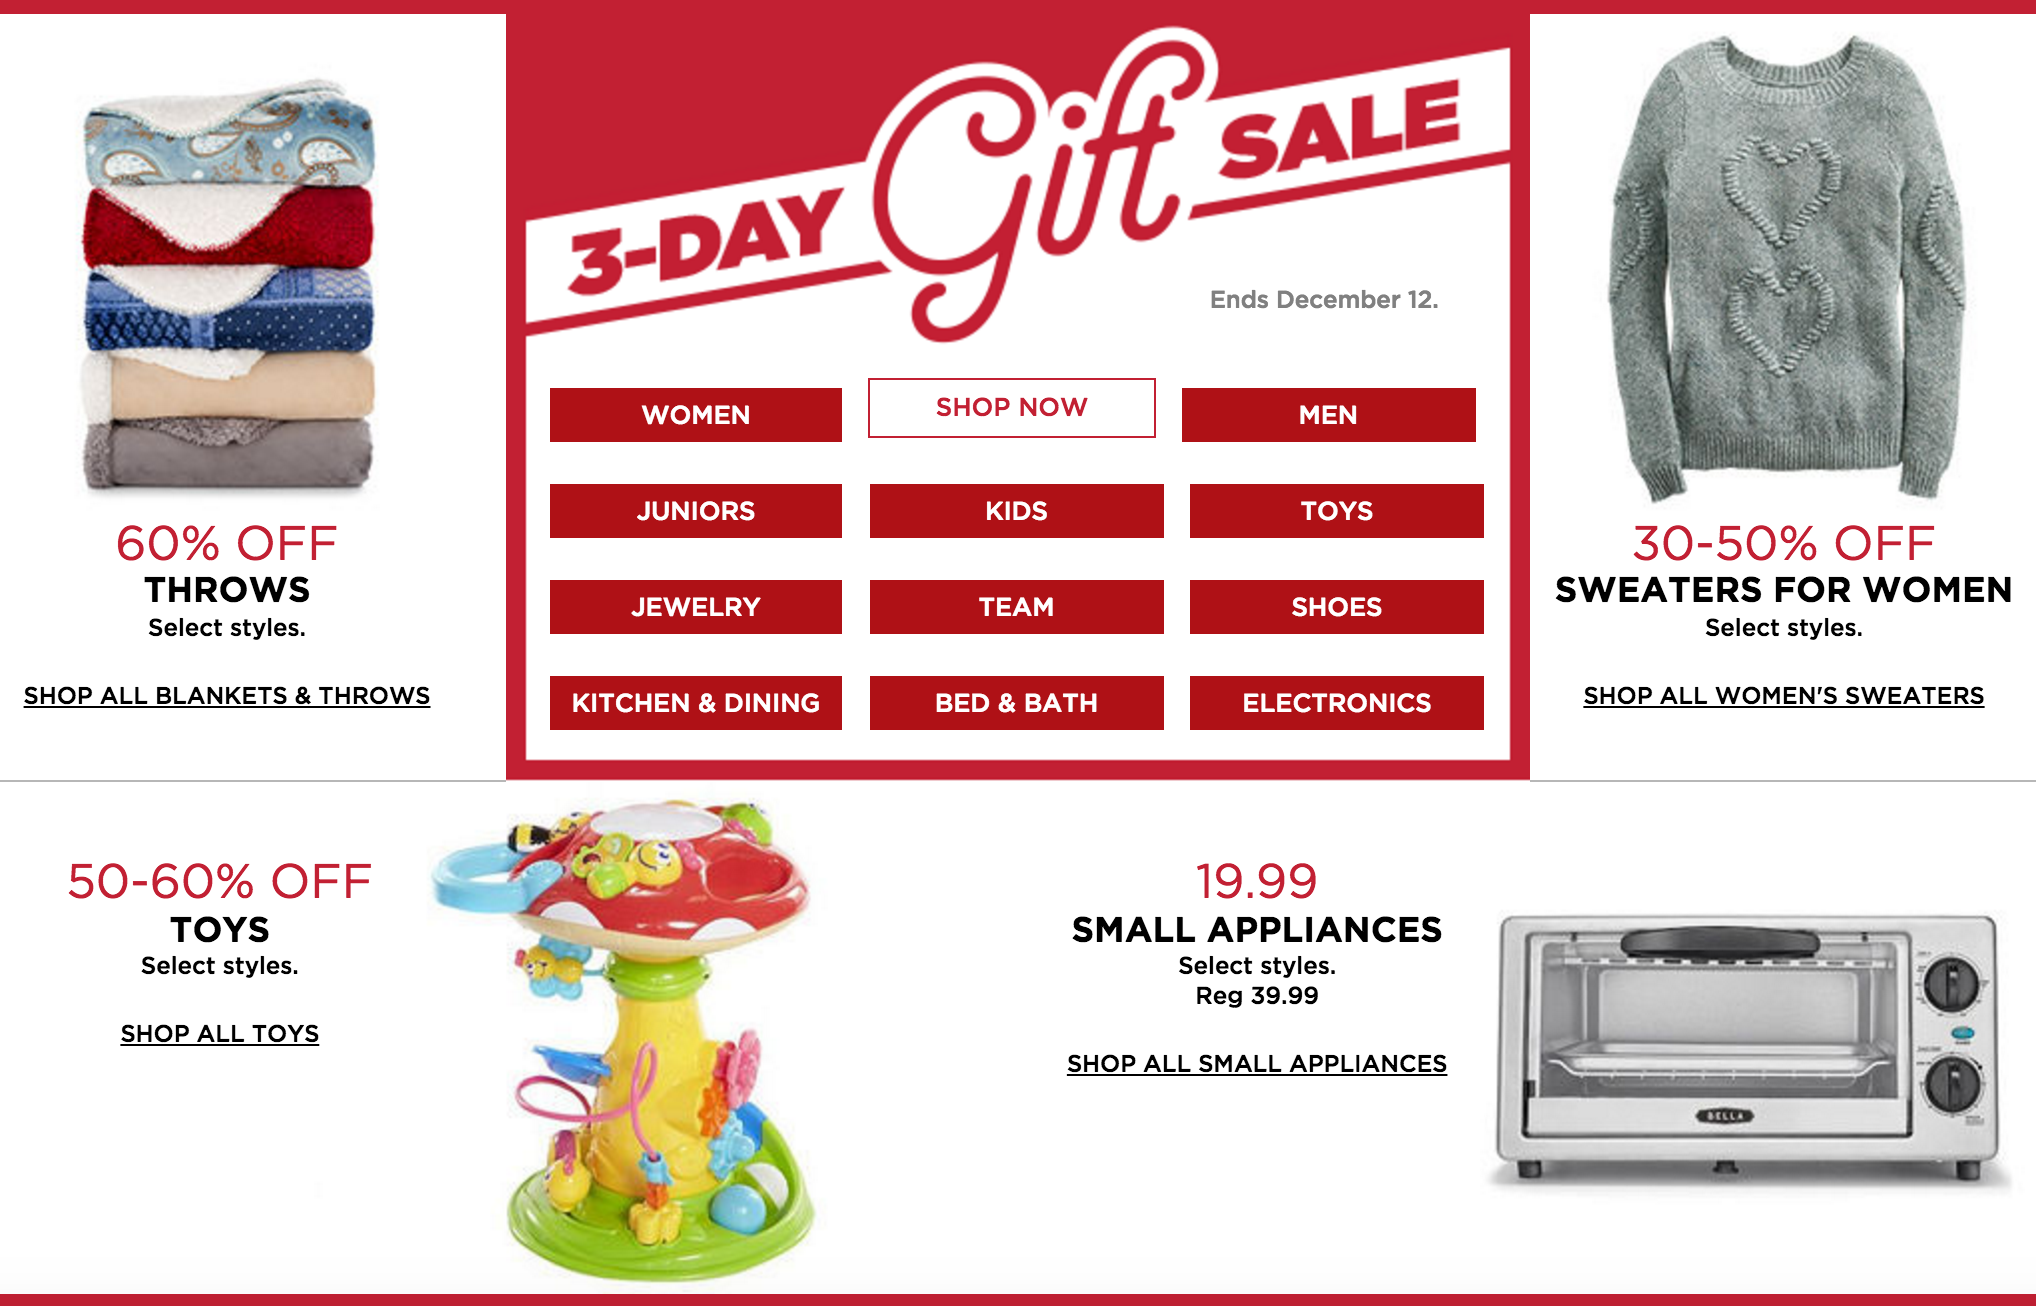 Kohl's: LAST DAY of 3-Day Gift Sale + Stackable Promo Codes!